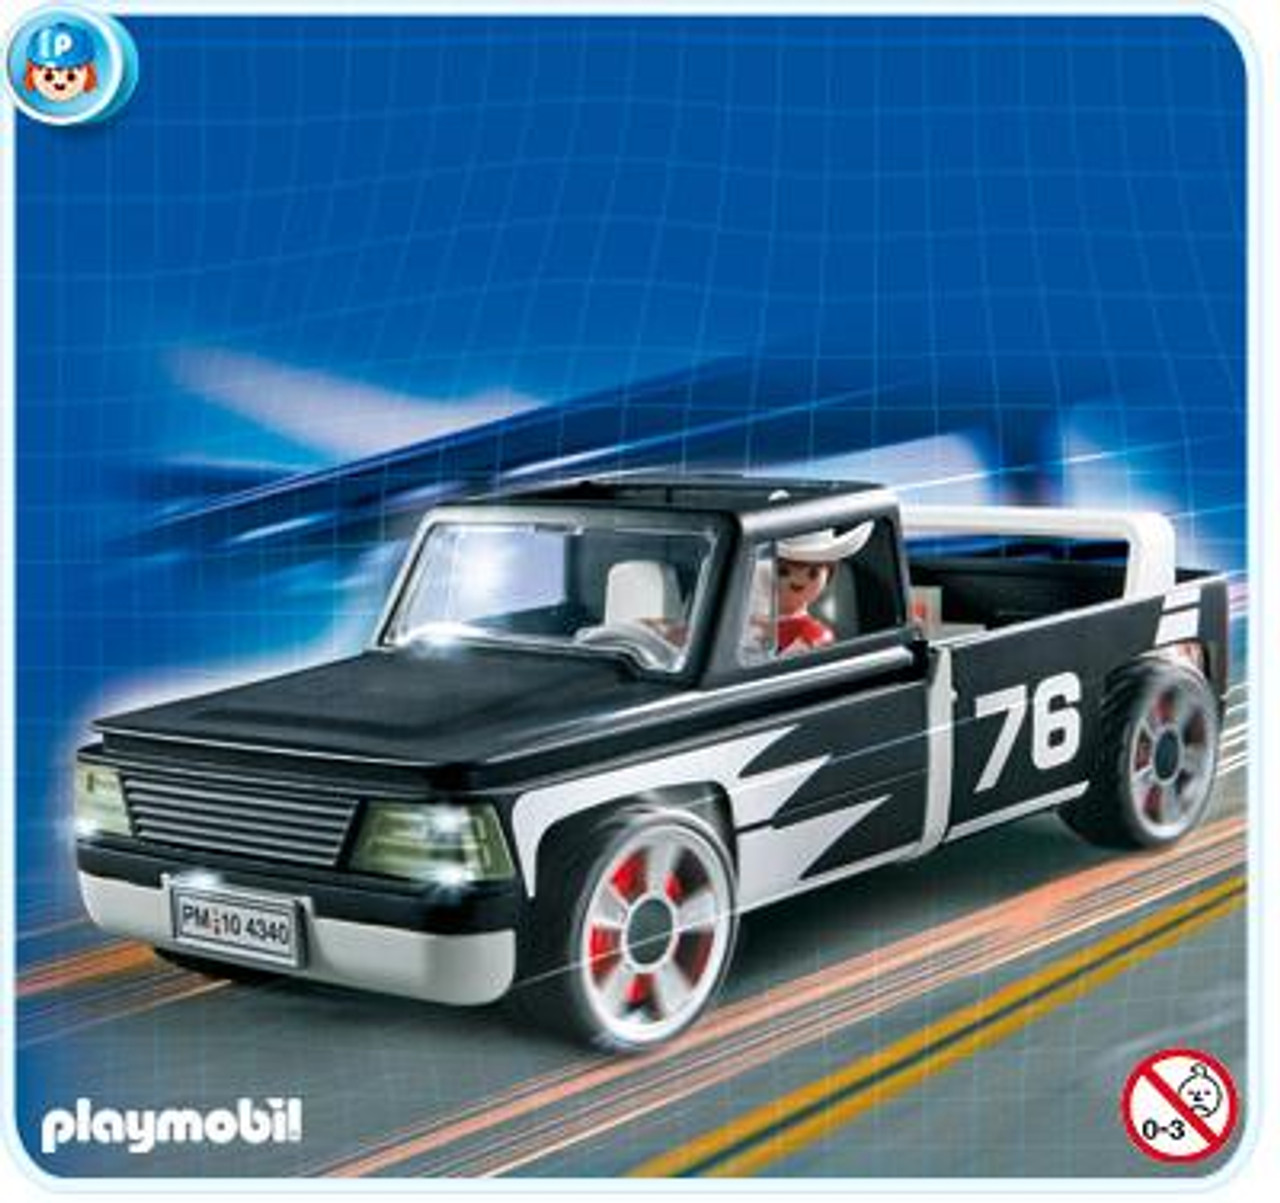 Playmobil Transport Carry Along Pick Up Truck Set #4340